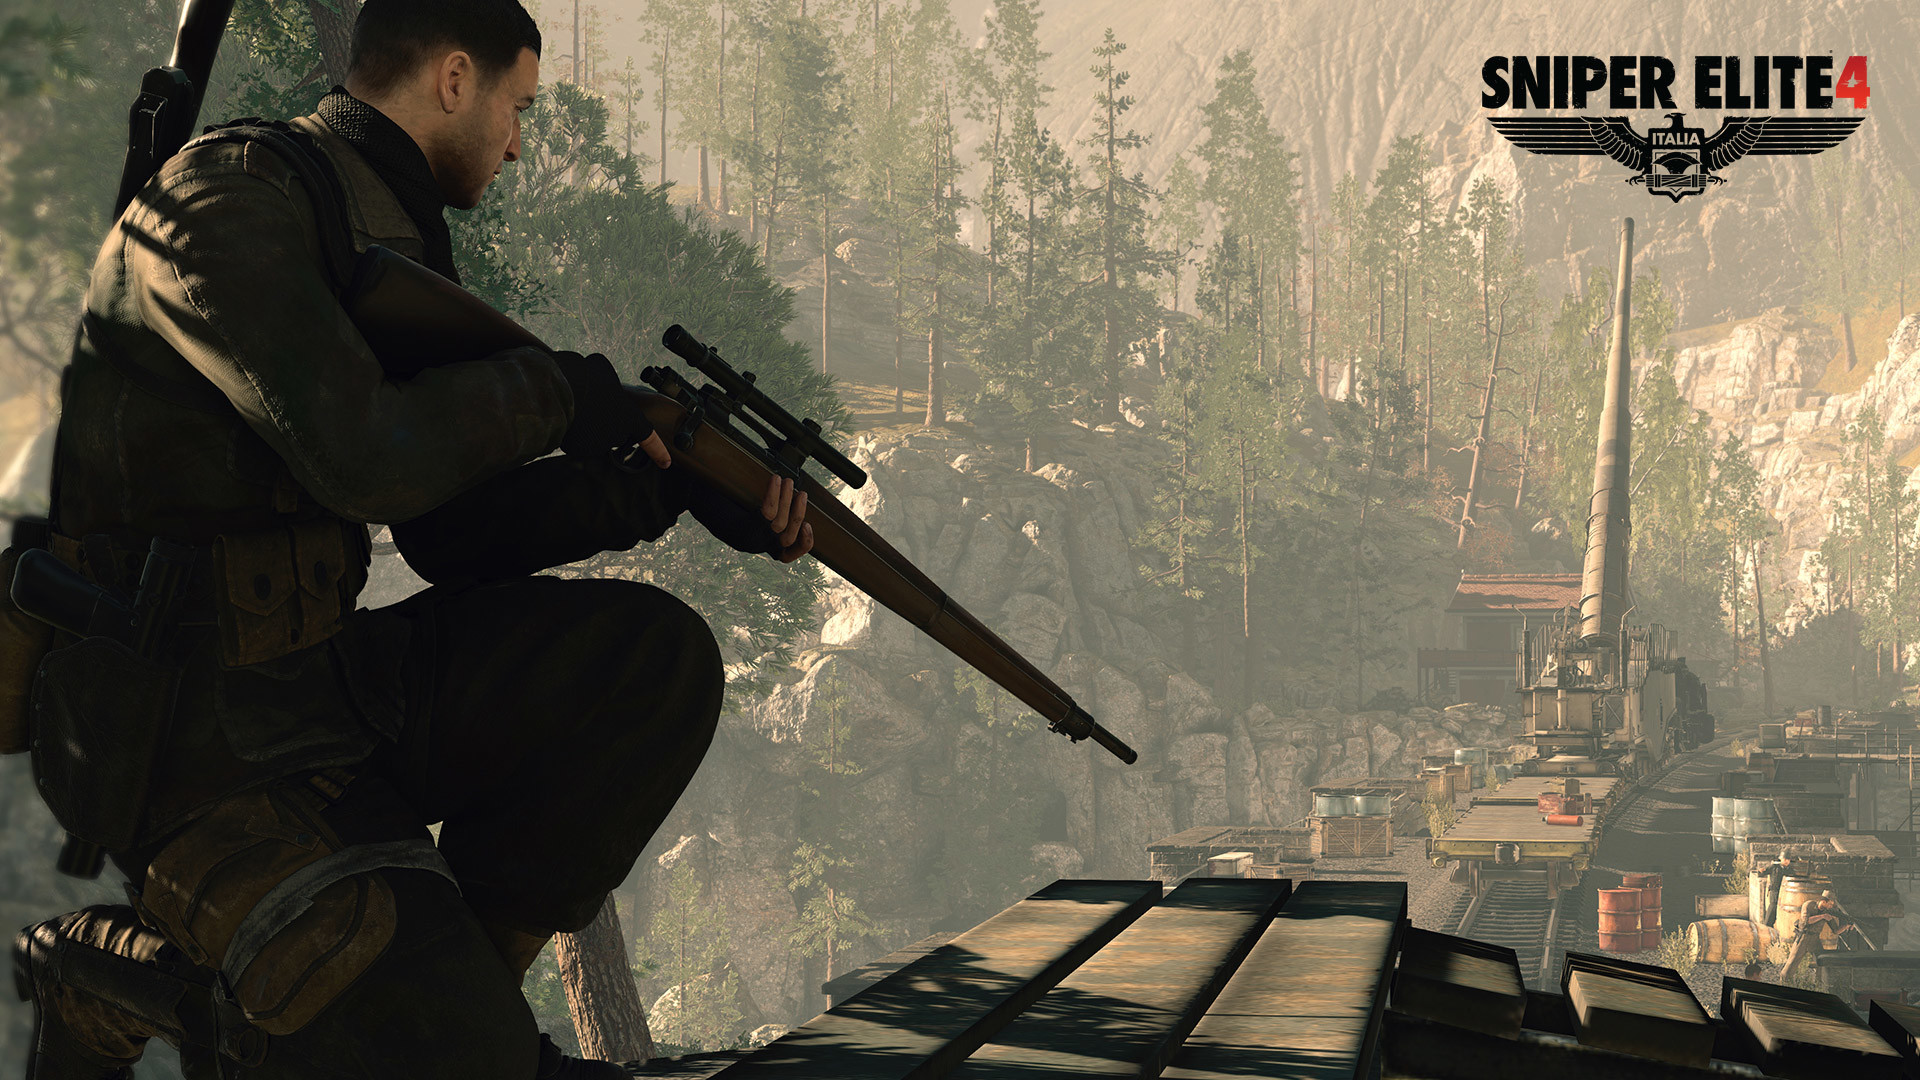 1920x1080 sniper-elite-hd-wallpaper-wp3809386-1